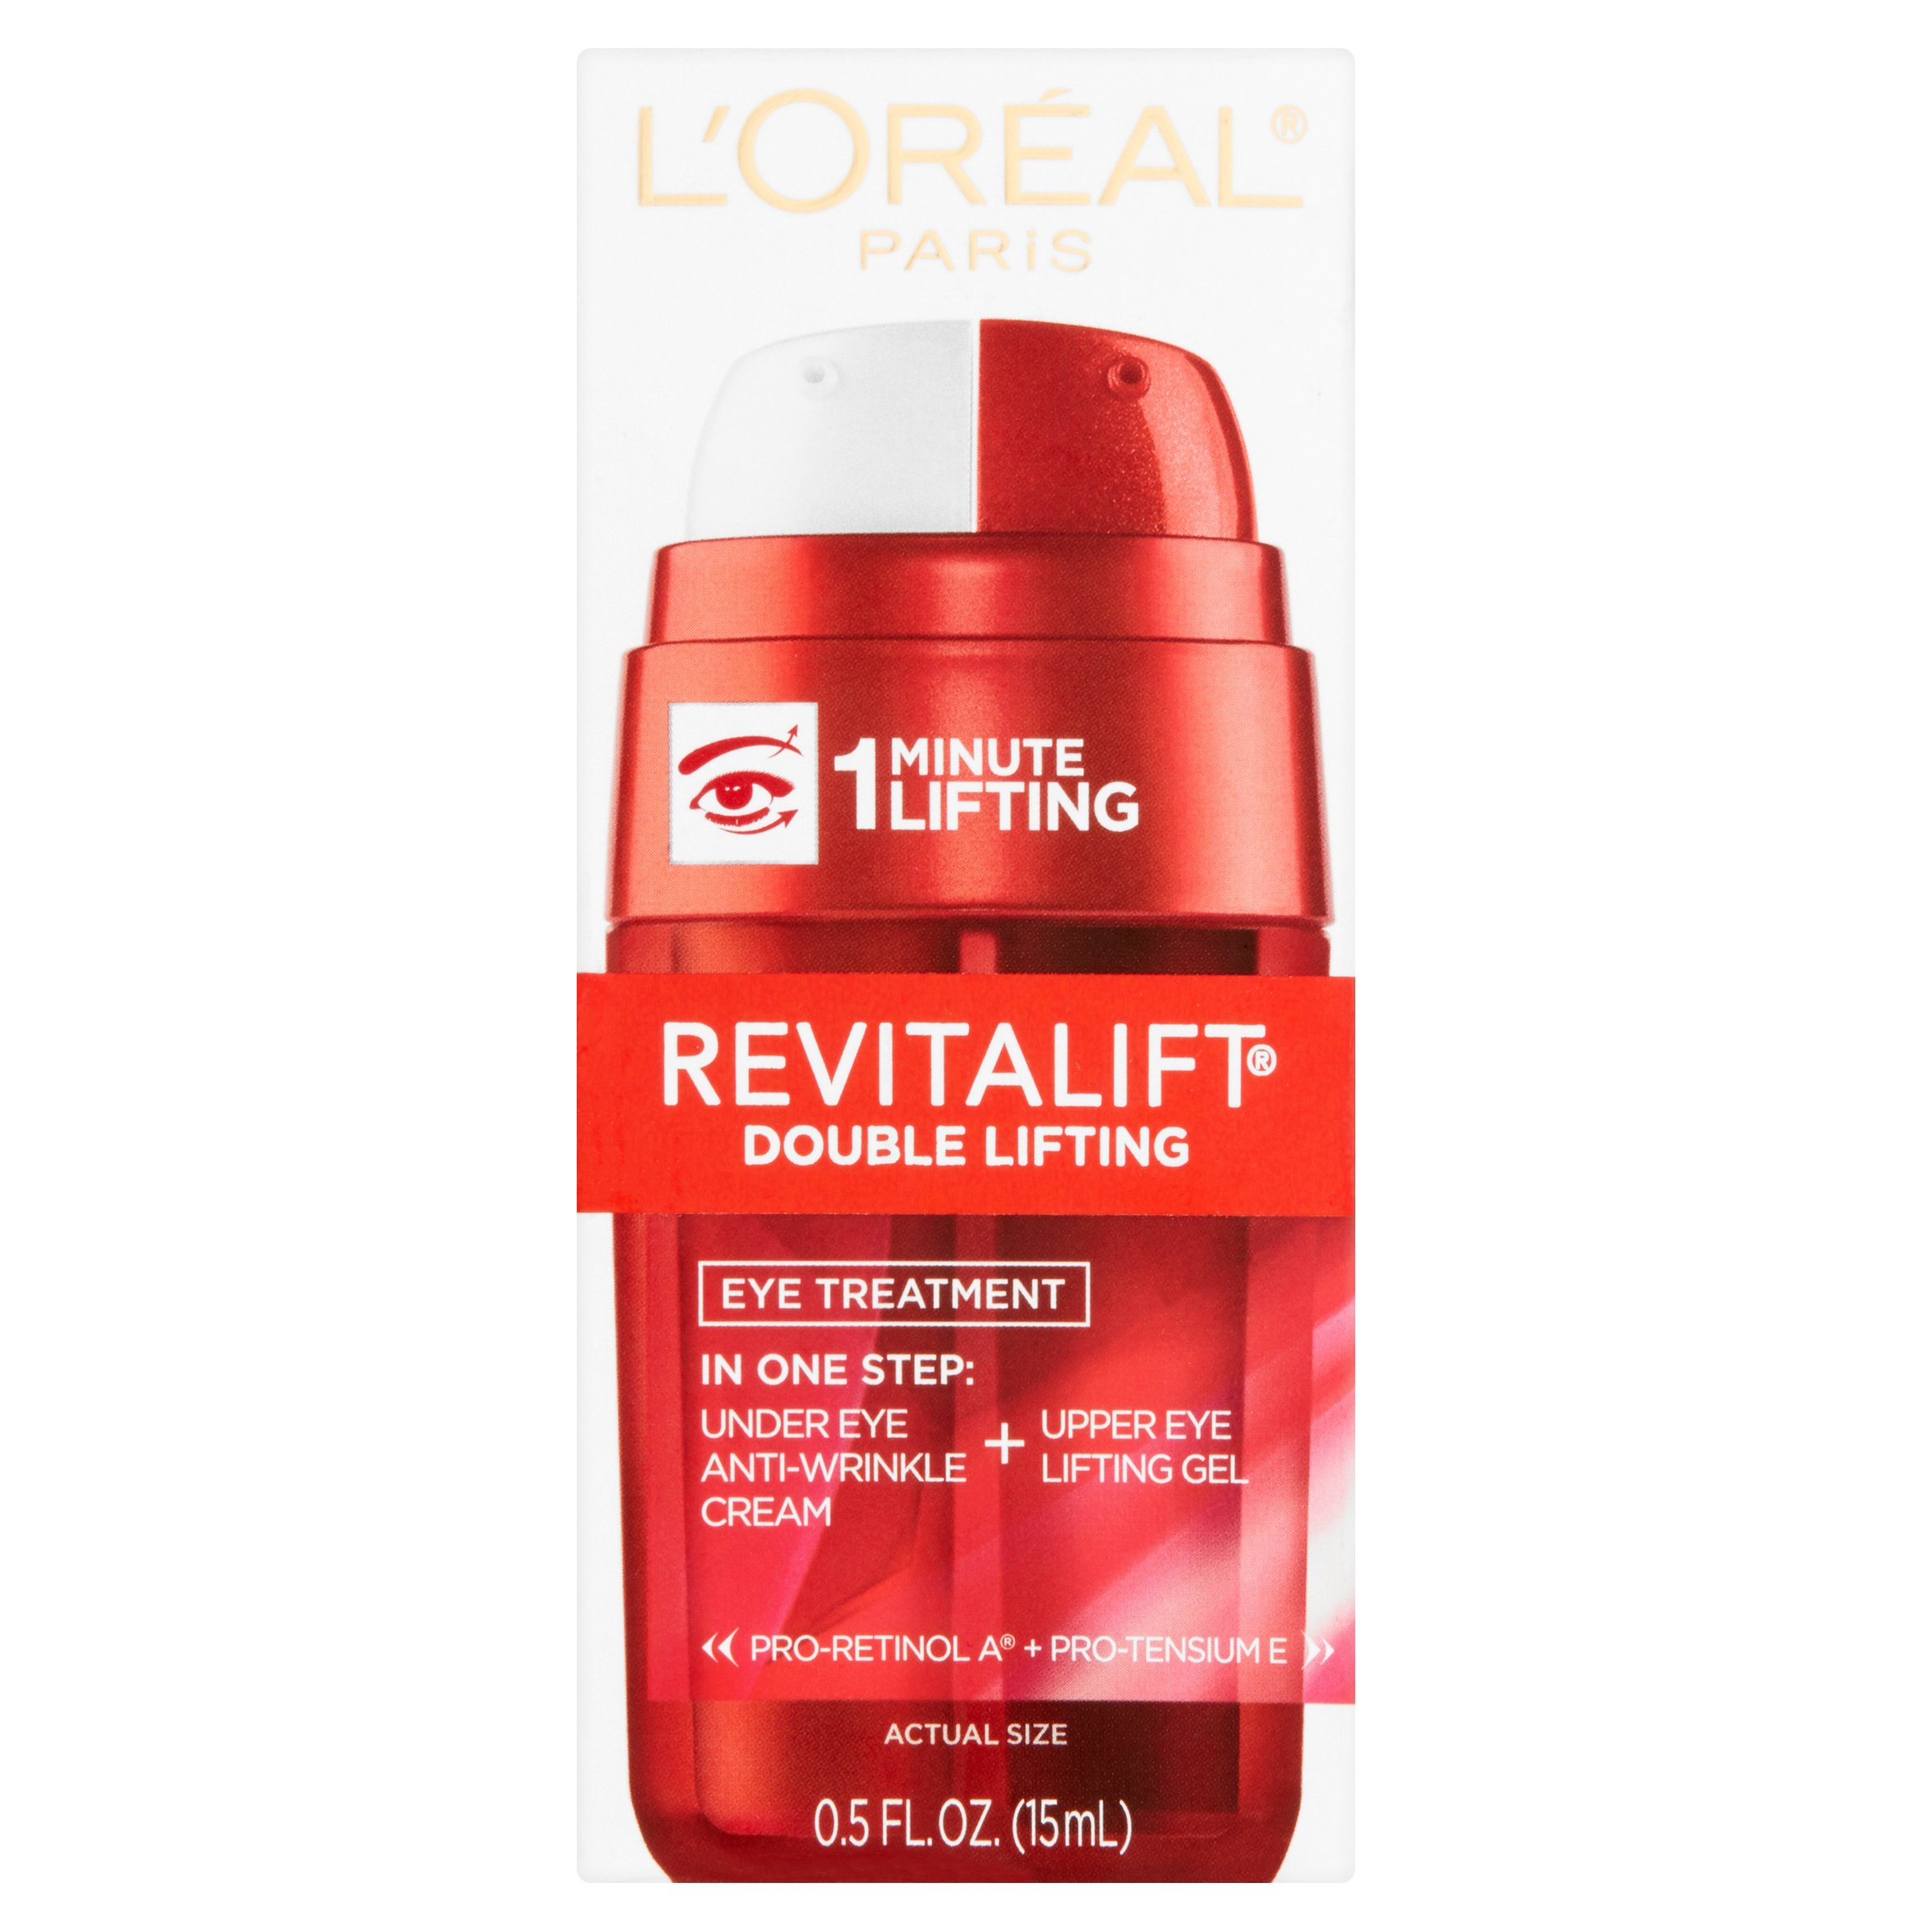 L'Oreal Paris Revitalift Double Lifting Eye Treatment